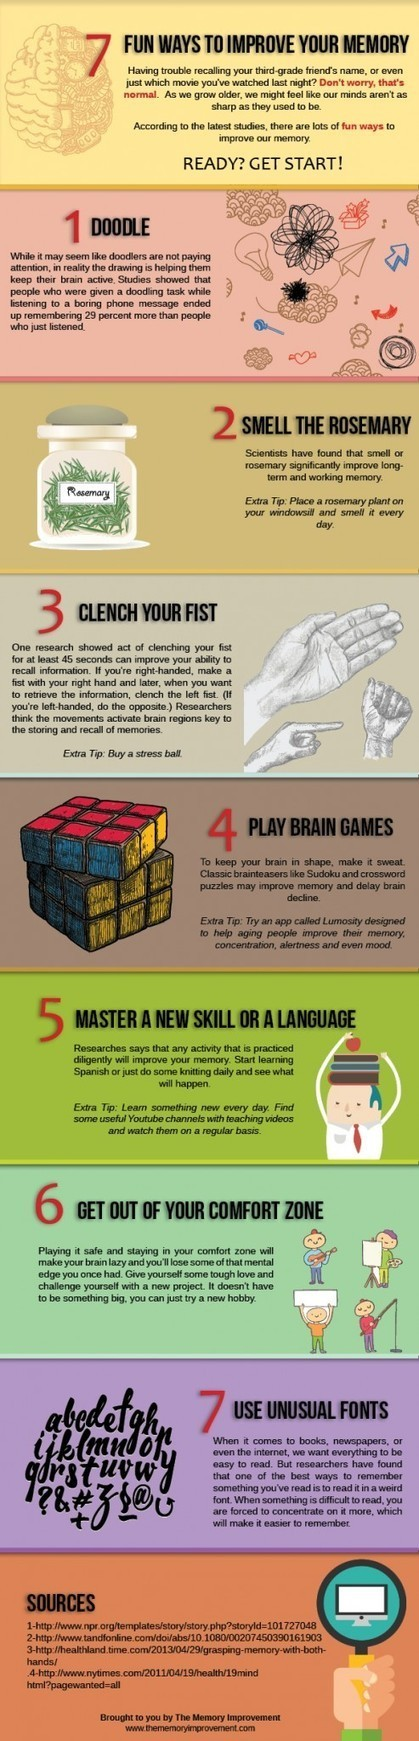 Fun Ways To Improve Your Memory Infographic | CSPEducational Technology | Scoop.it